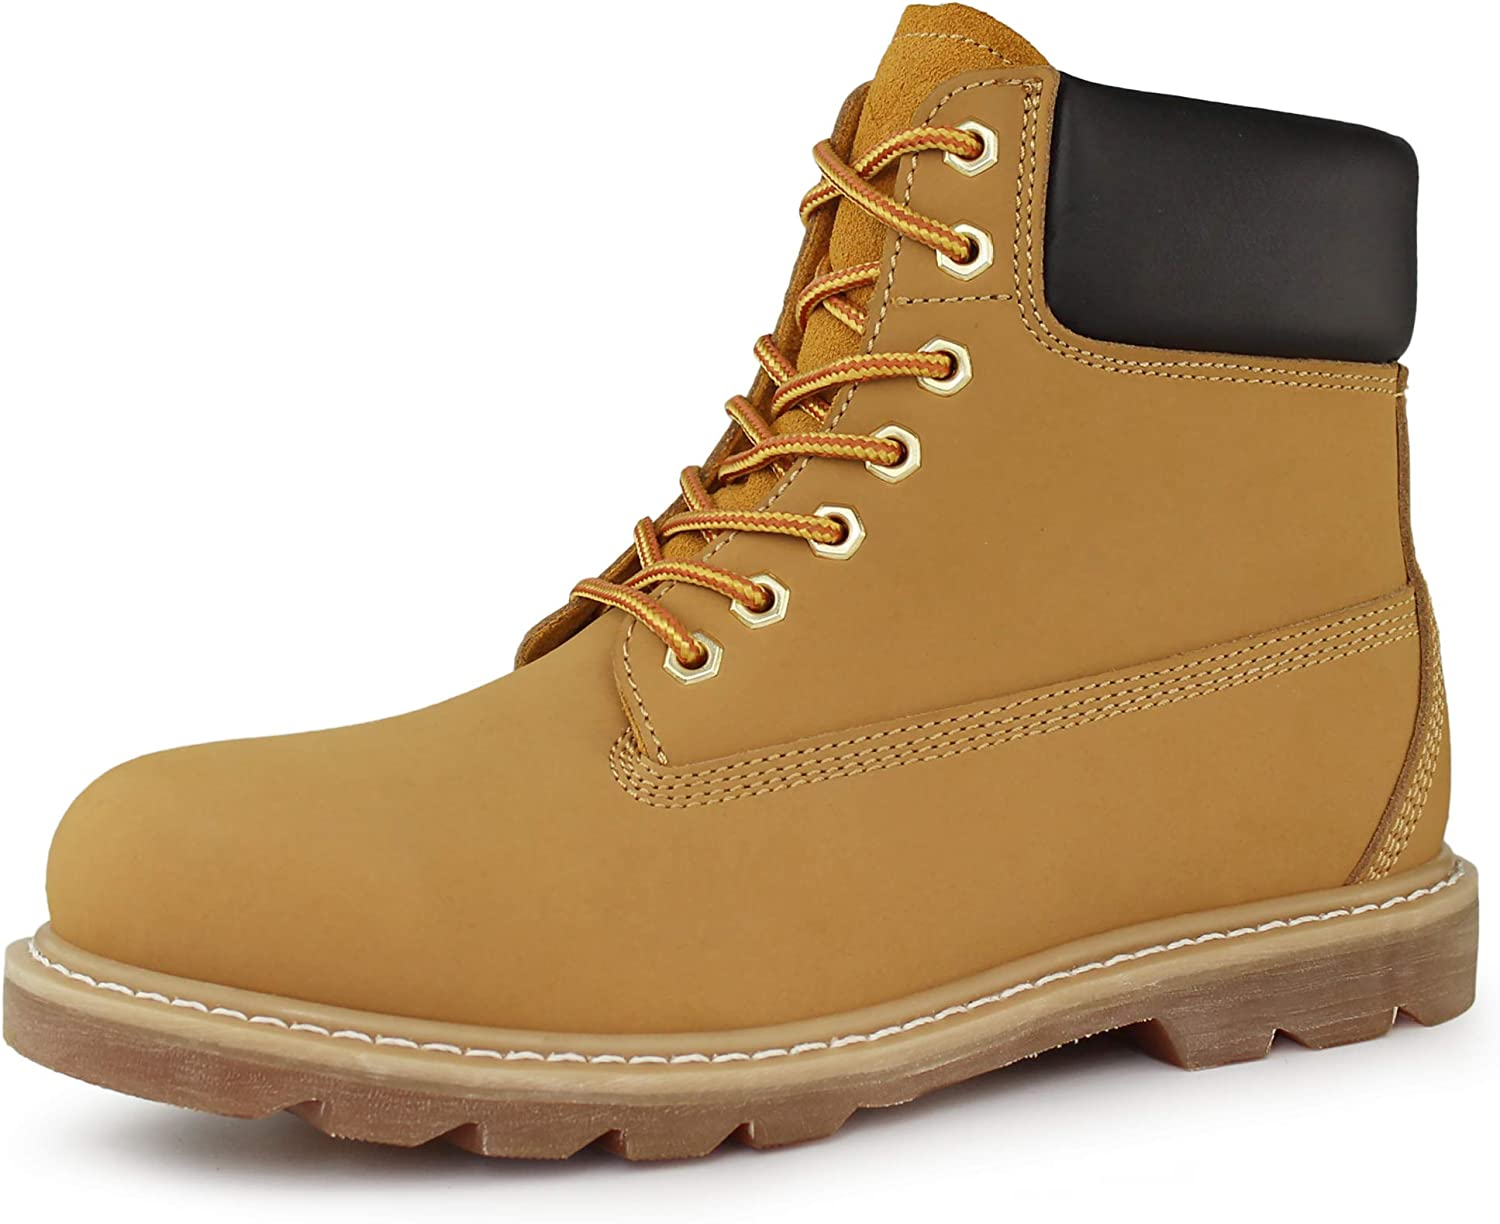 Hawkwell Men's Don't miss Max 41% OFF the campaign Steel Toe Safety Leather Waterproof Work Boot